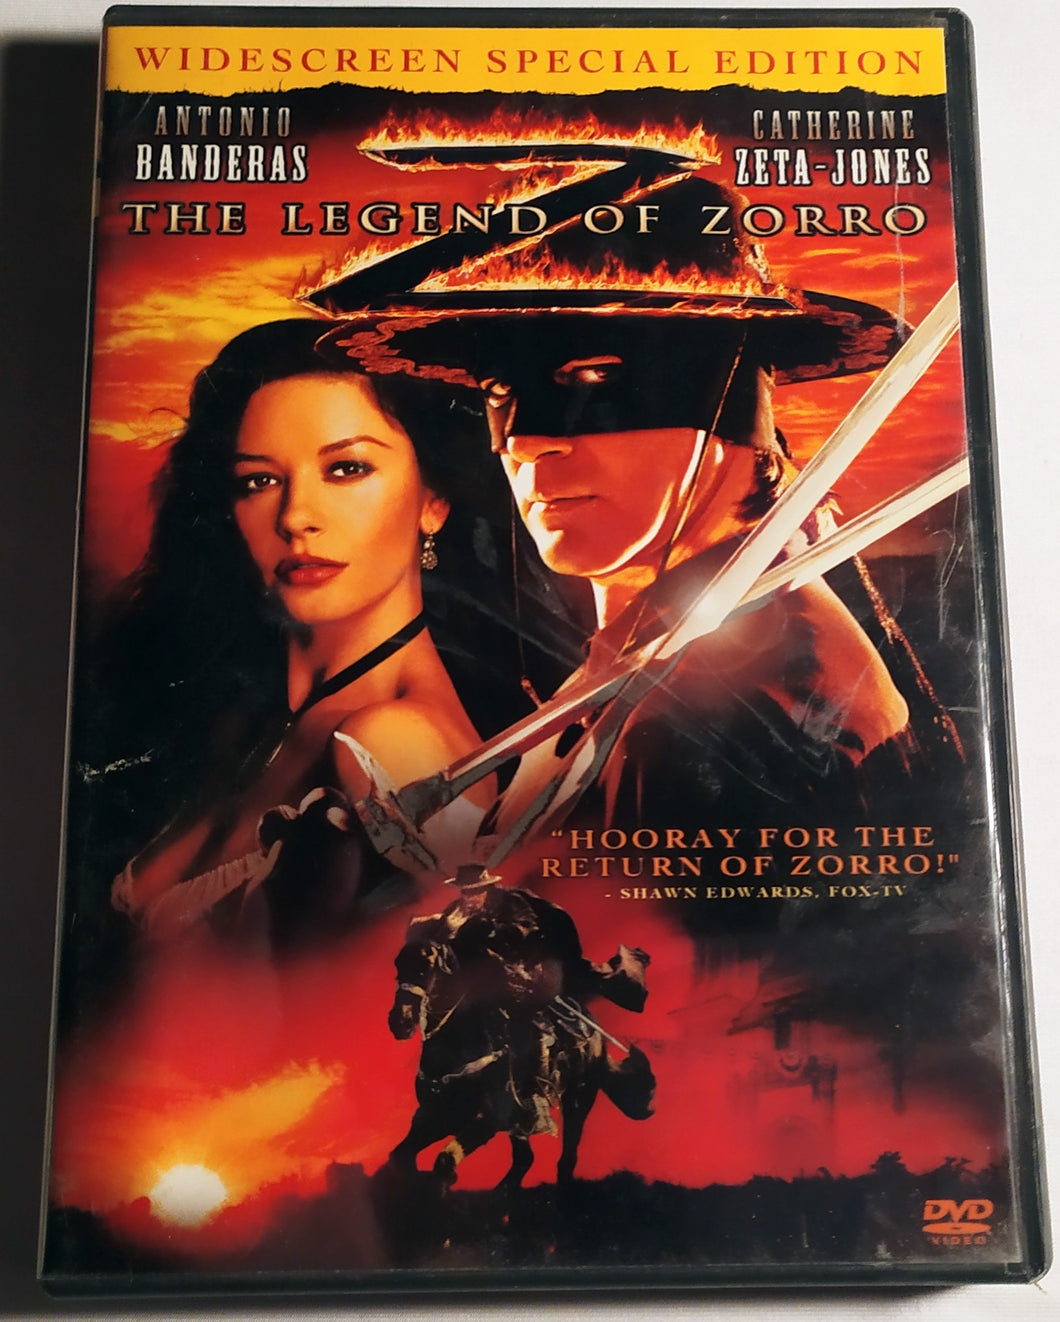 The Legend of Zorro - Widescreen Special Edition